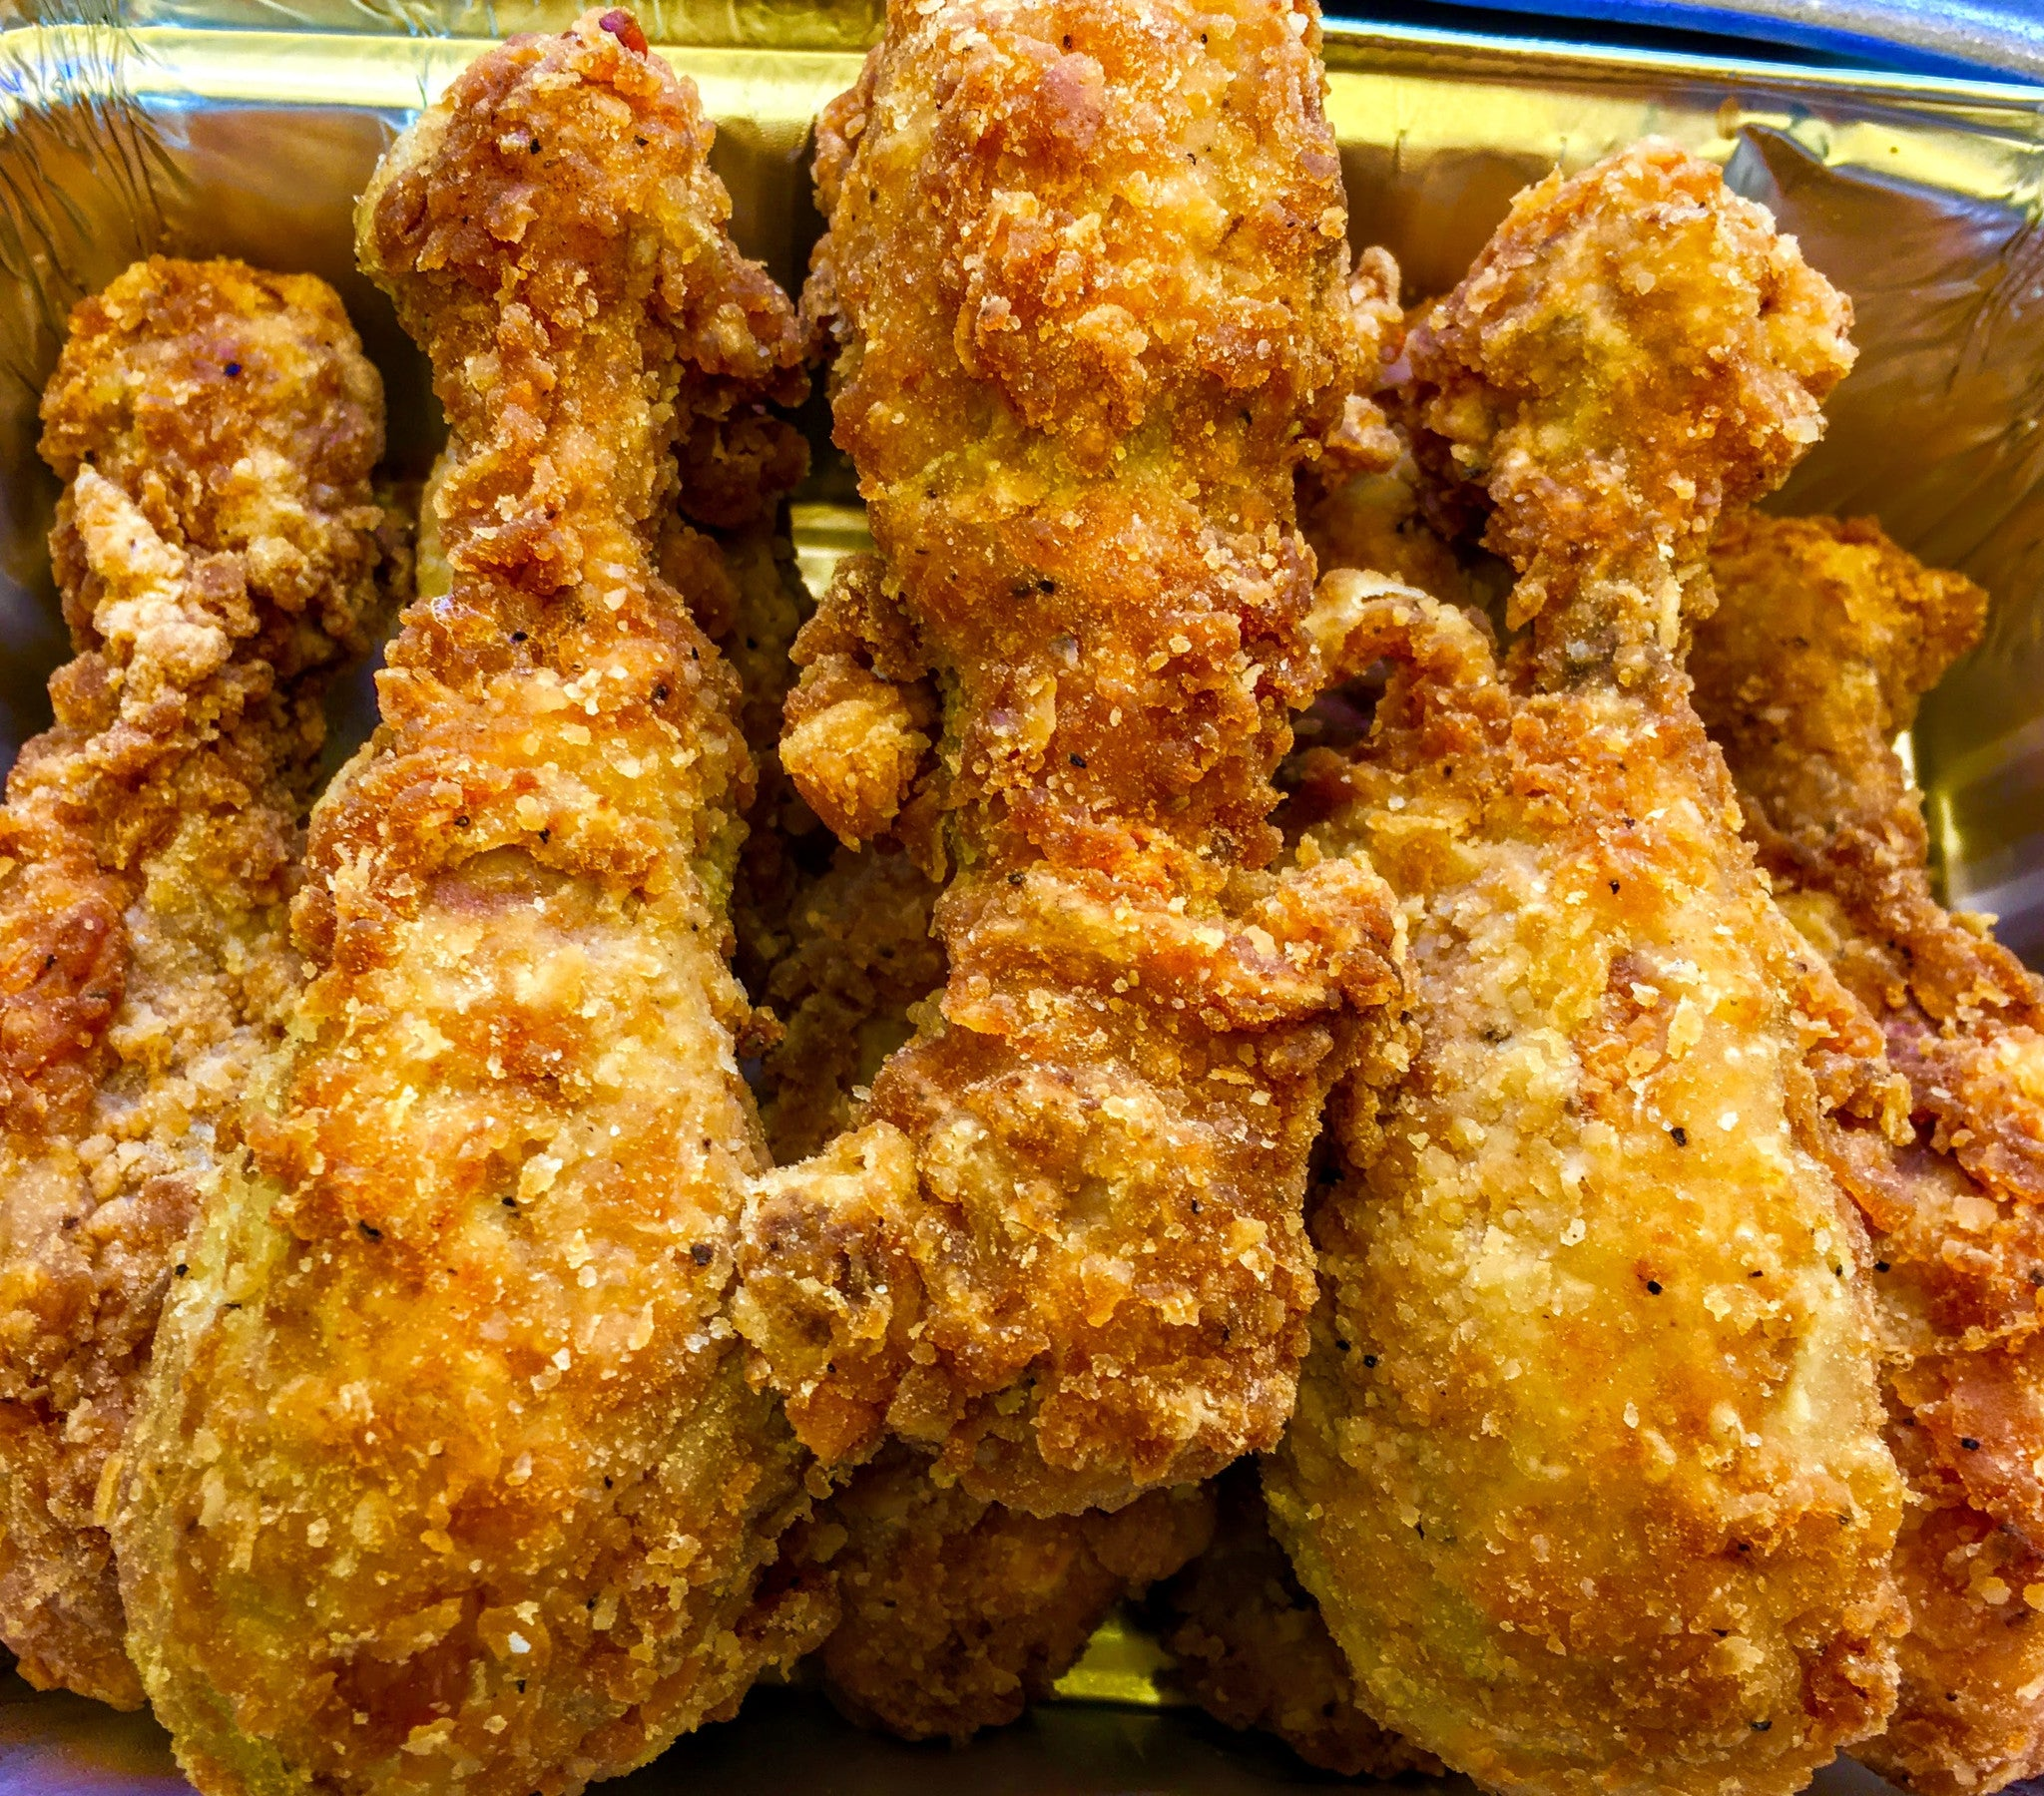 Fried Chicken: $9.98/lb